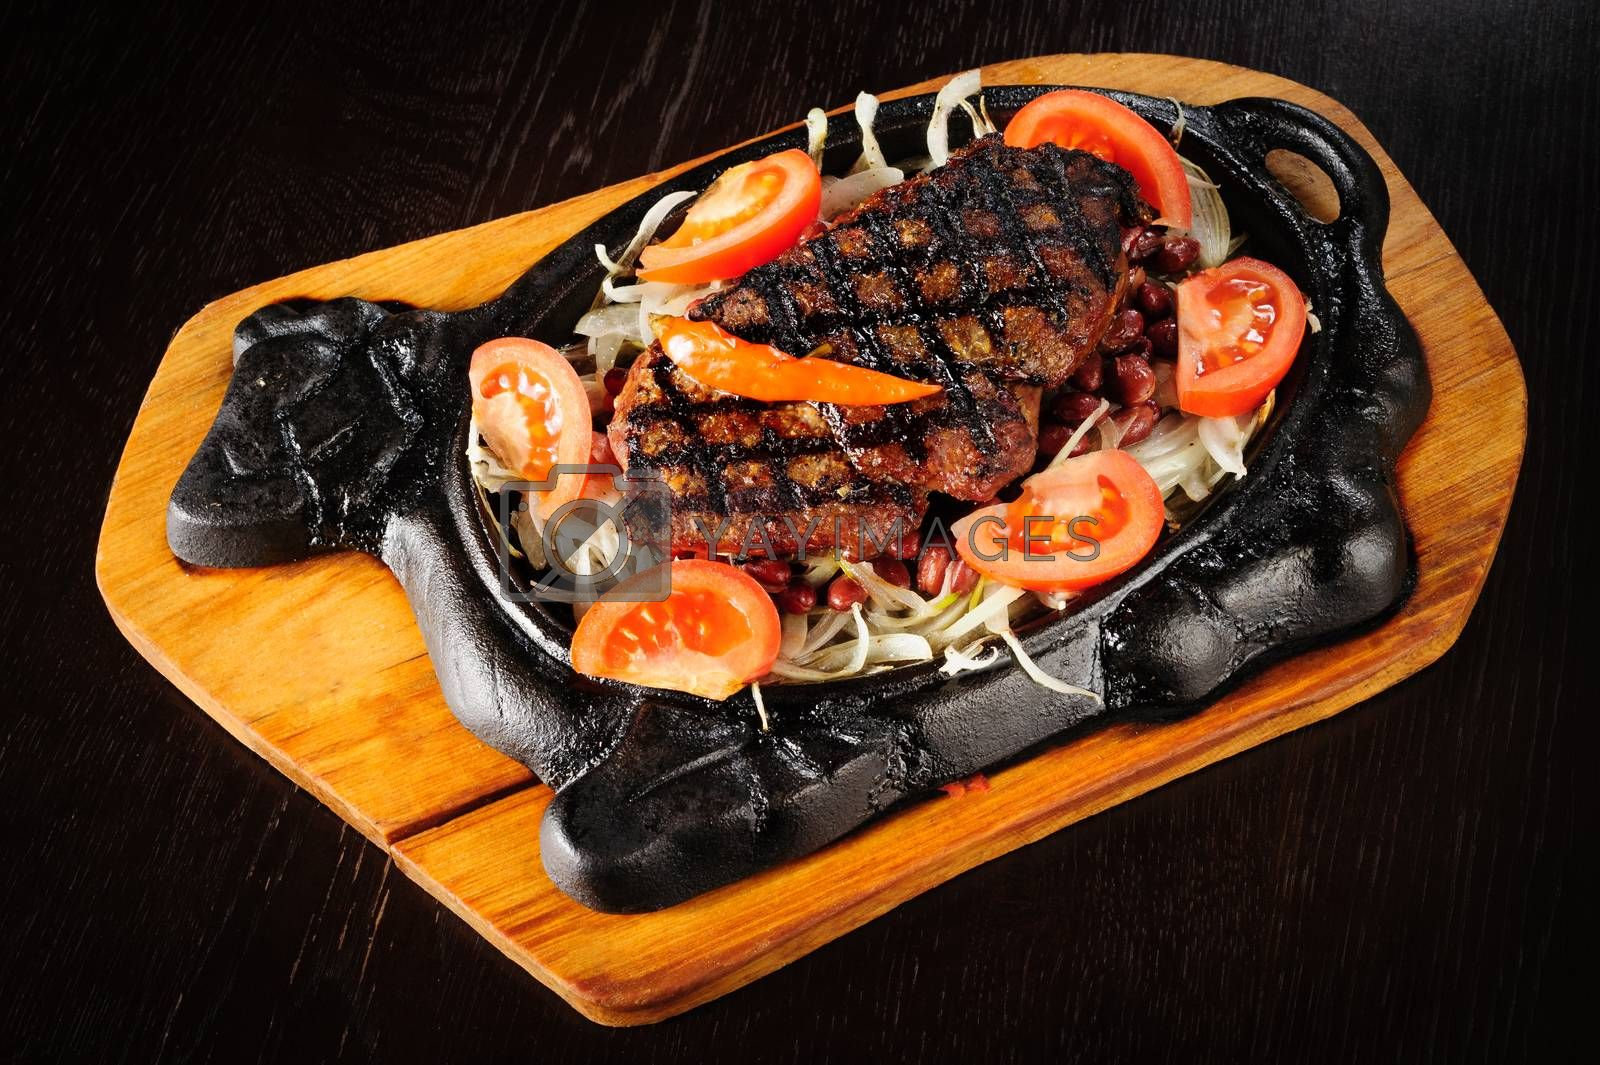 Juicy beef steak with red beans garnish and sliced tomato in cast iron plate